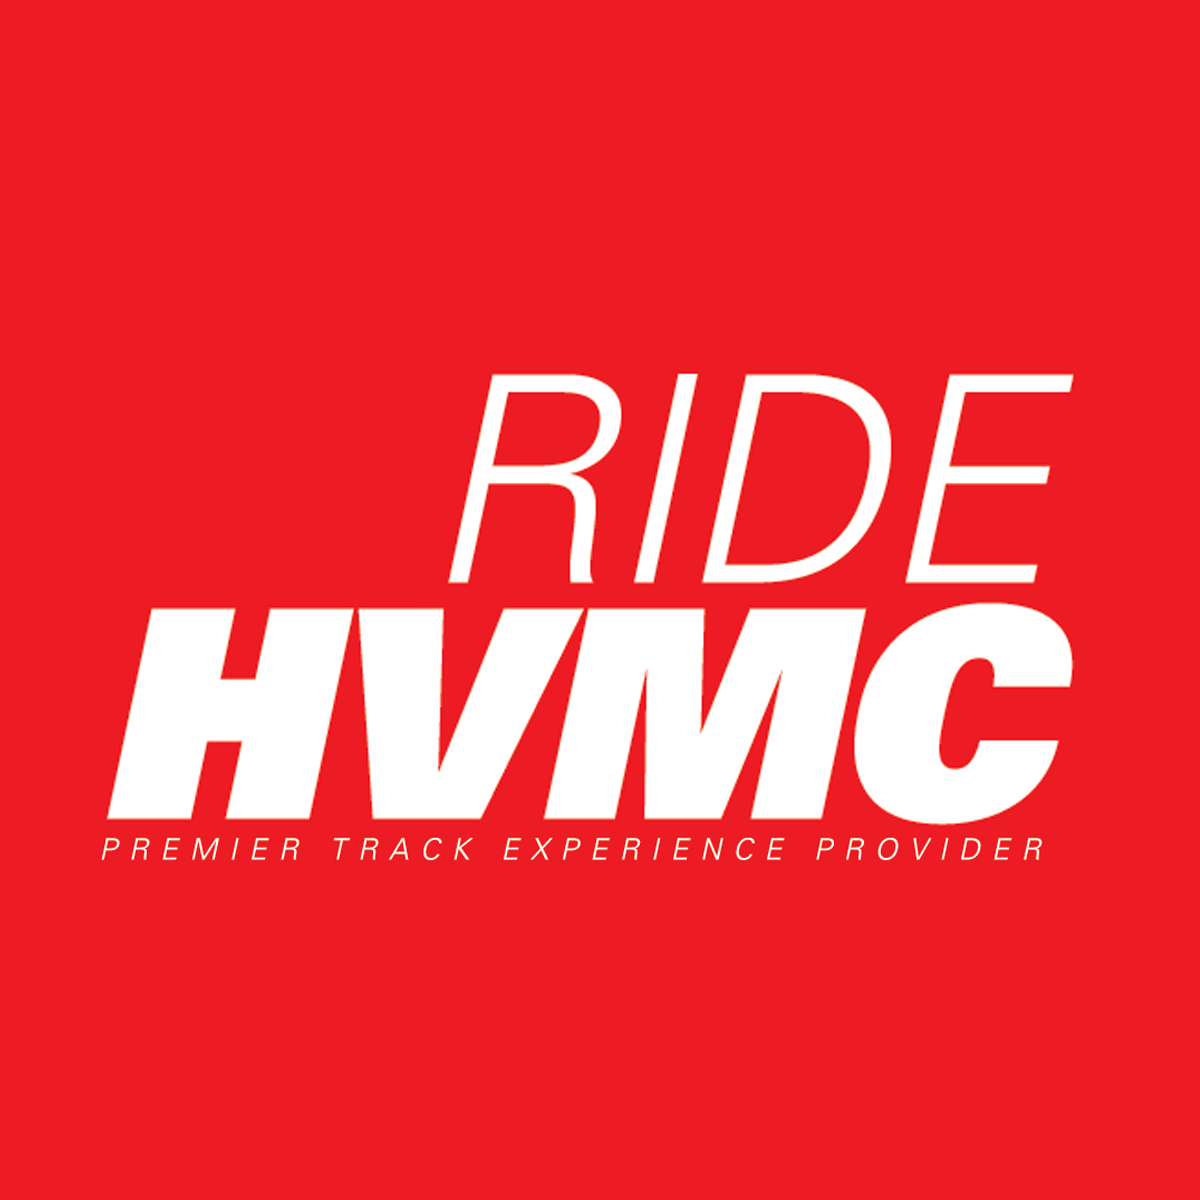 RideHVMC - Premier Motorcycle Track Experience Provider